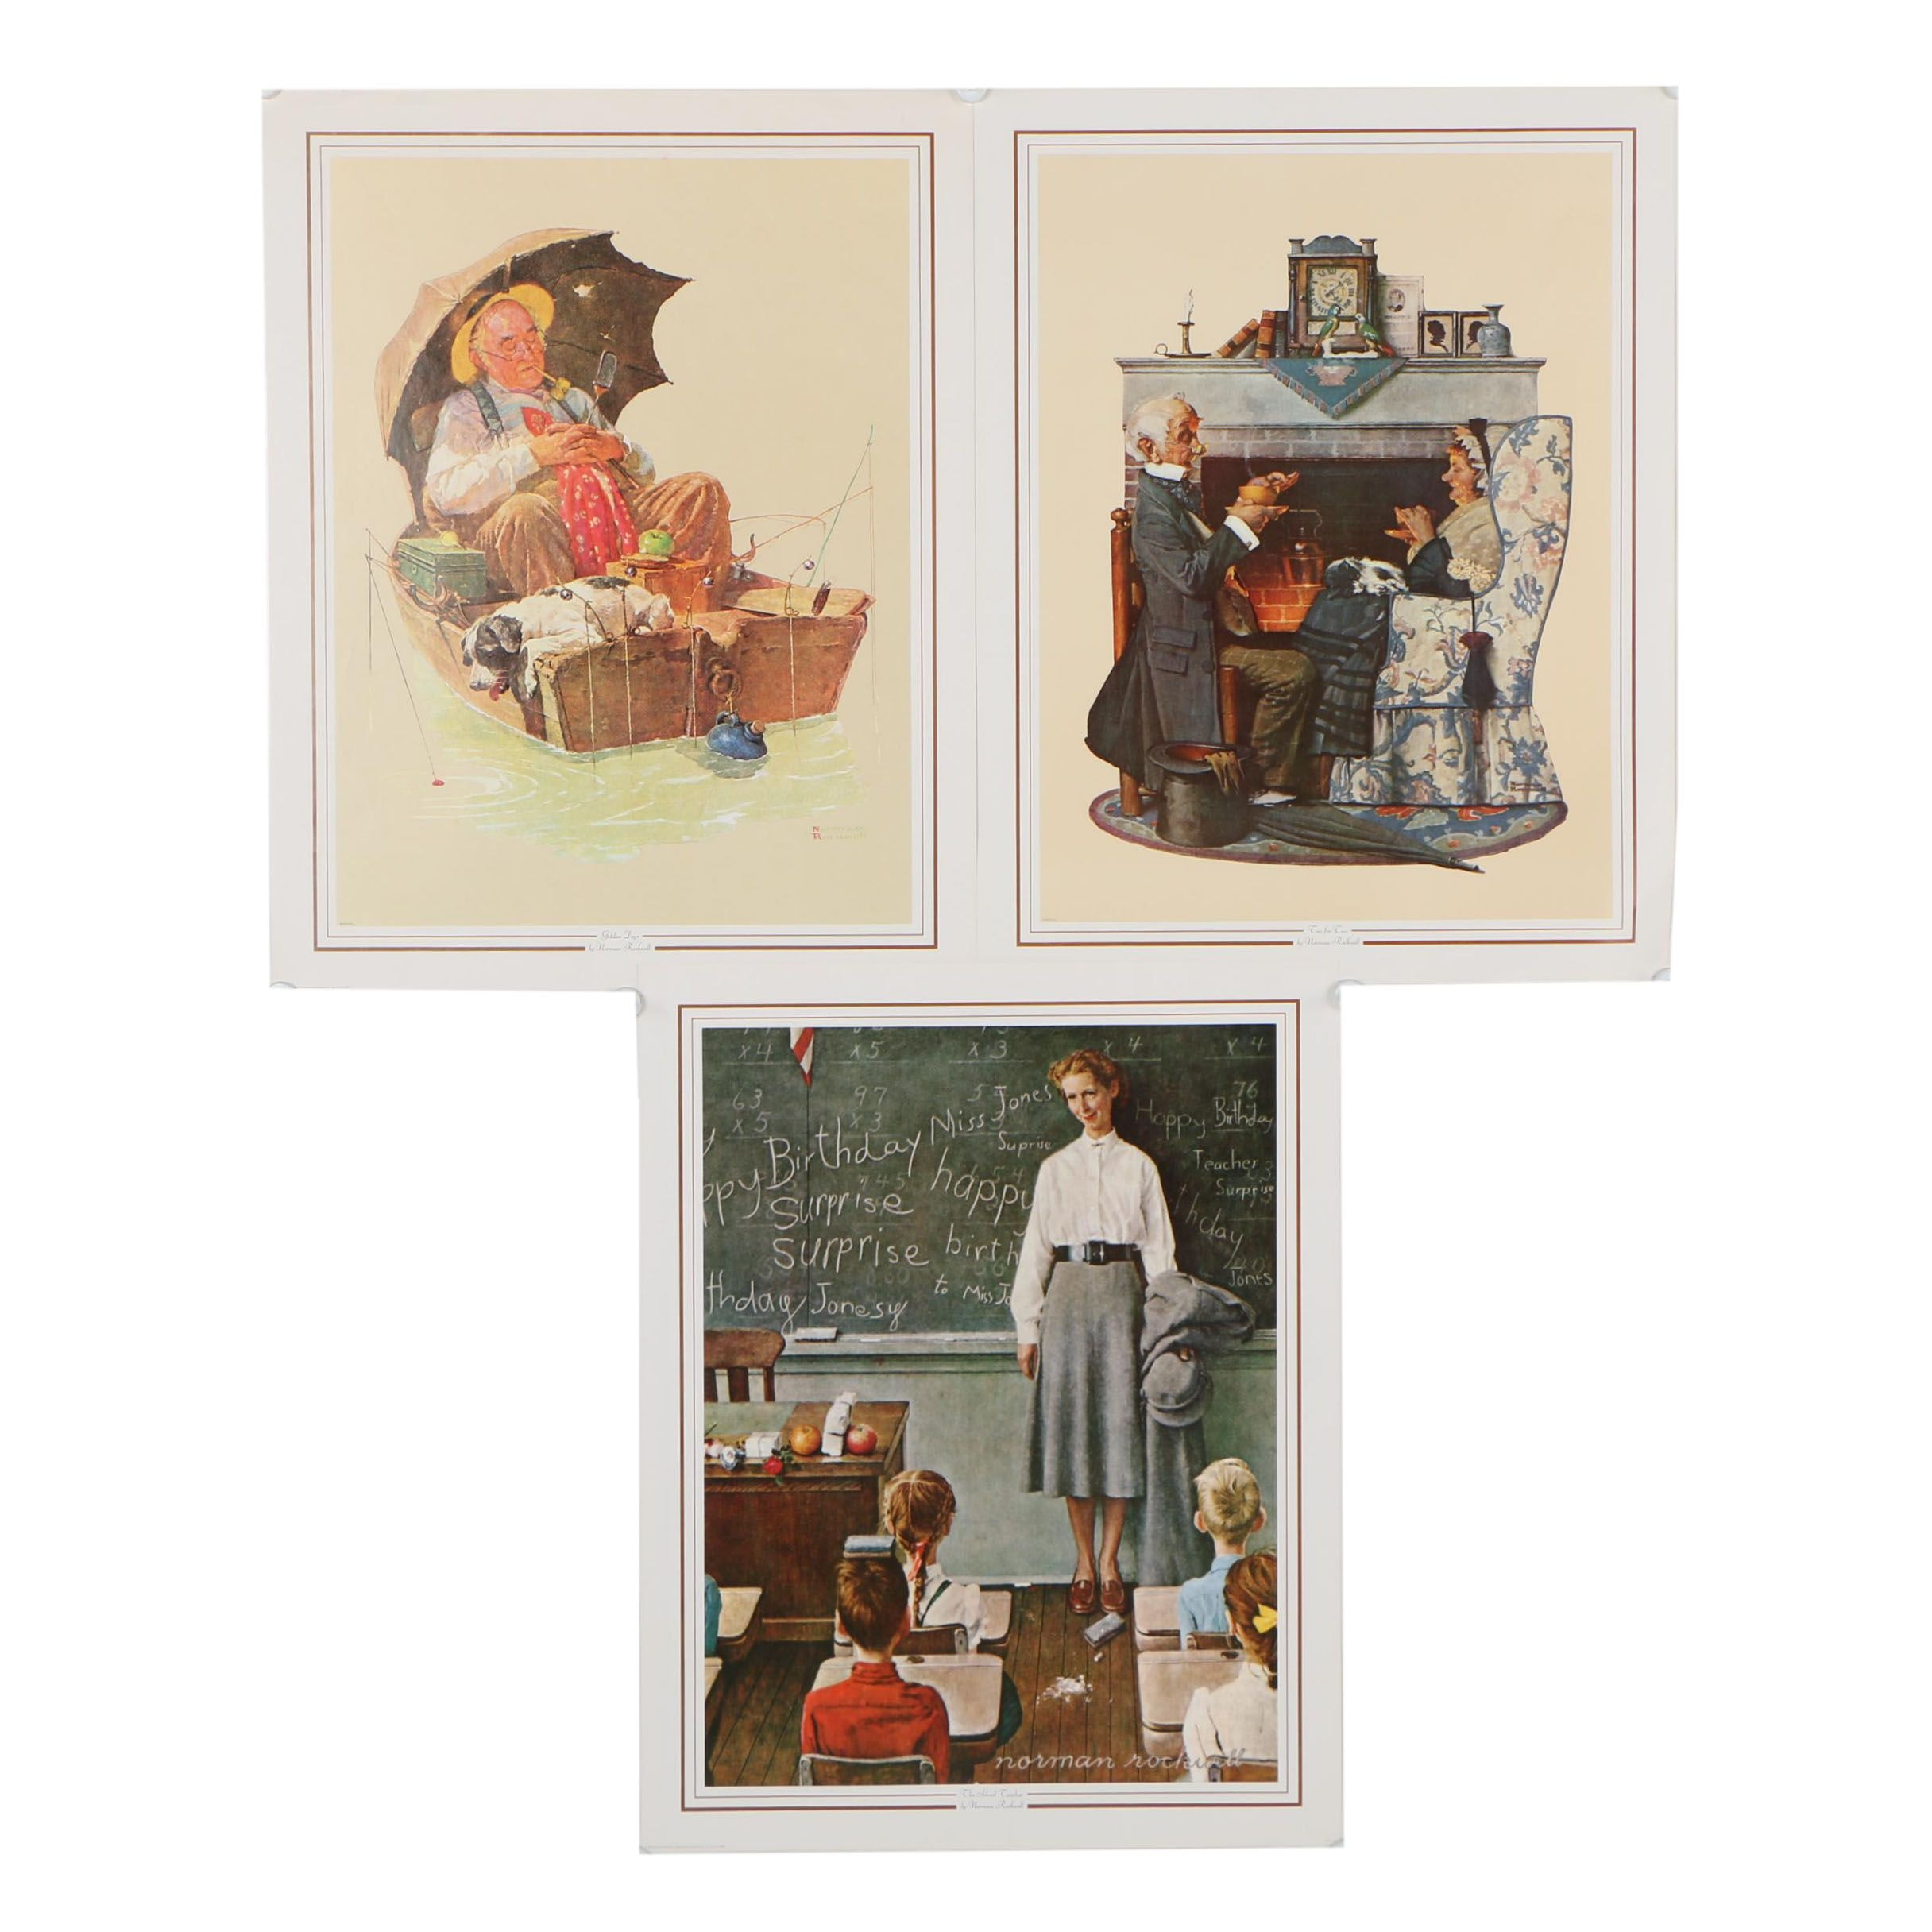 1973 Offset Lithographs after Norman Rockwell